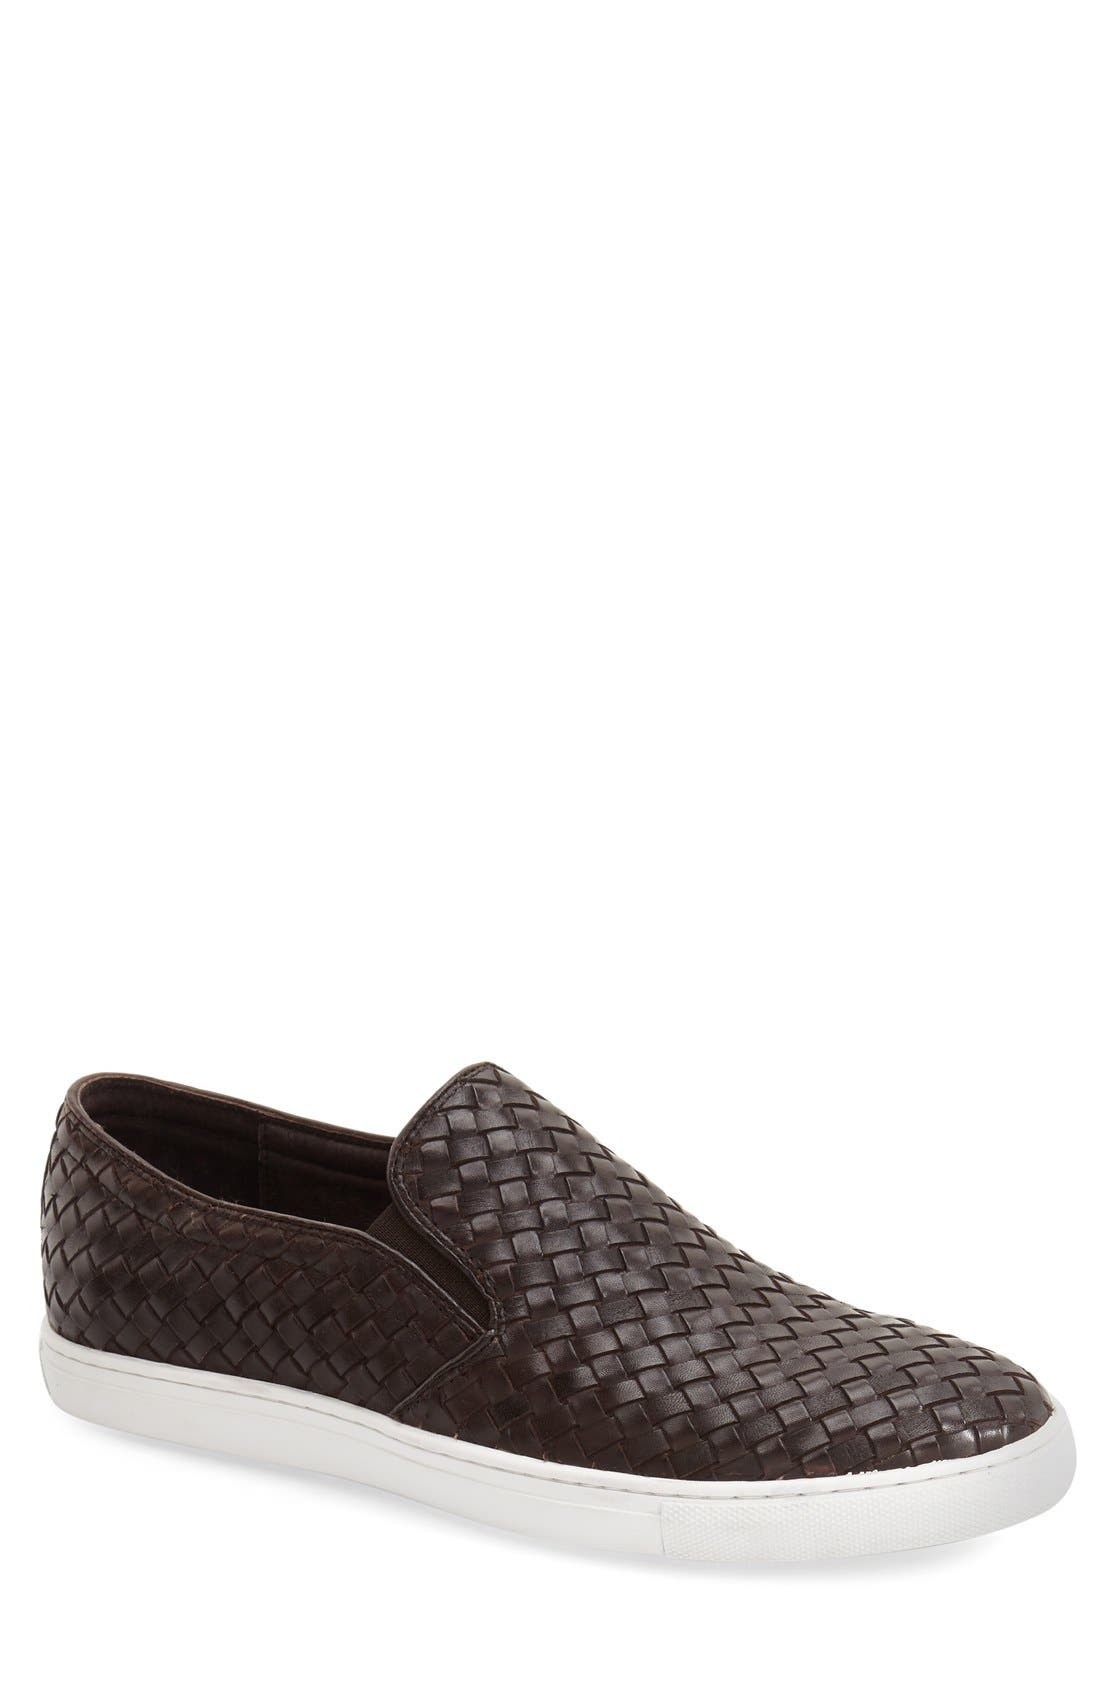 'Buzz' Slip-On Sneaker,                             Main thumbnail 1, color,                             Brown Leather